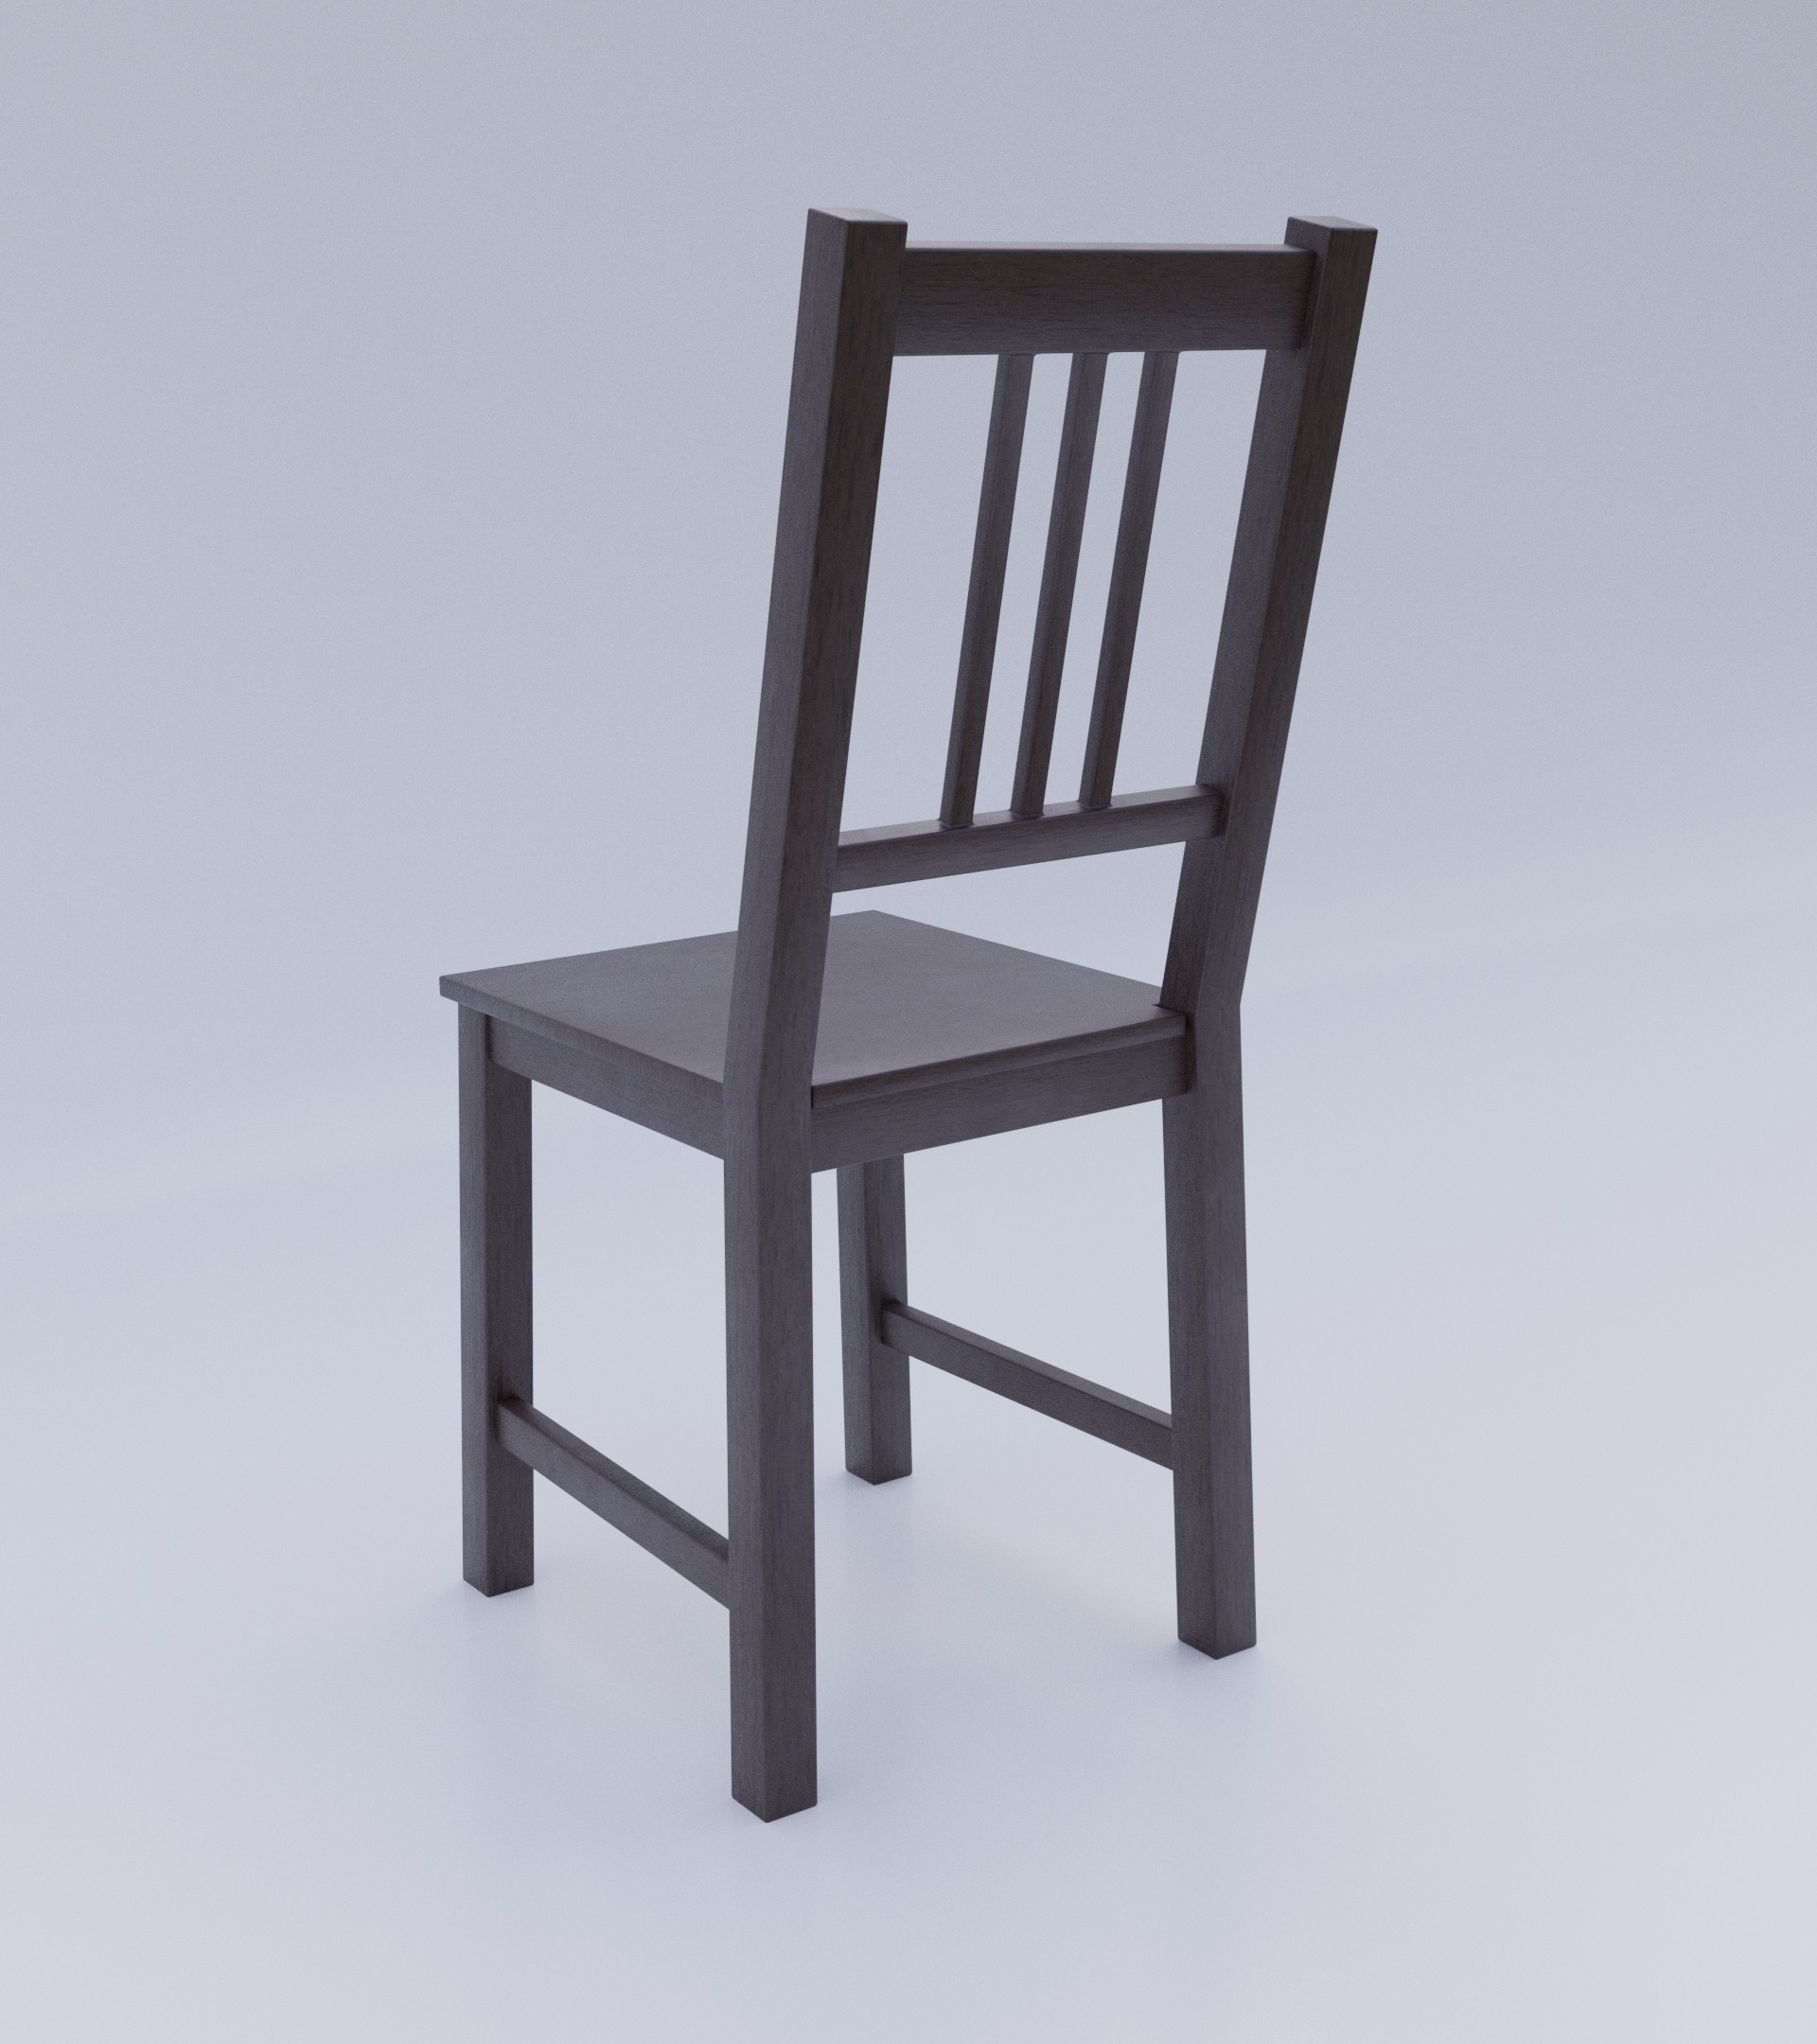 Simple Dark Wood Chair preview image 5